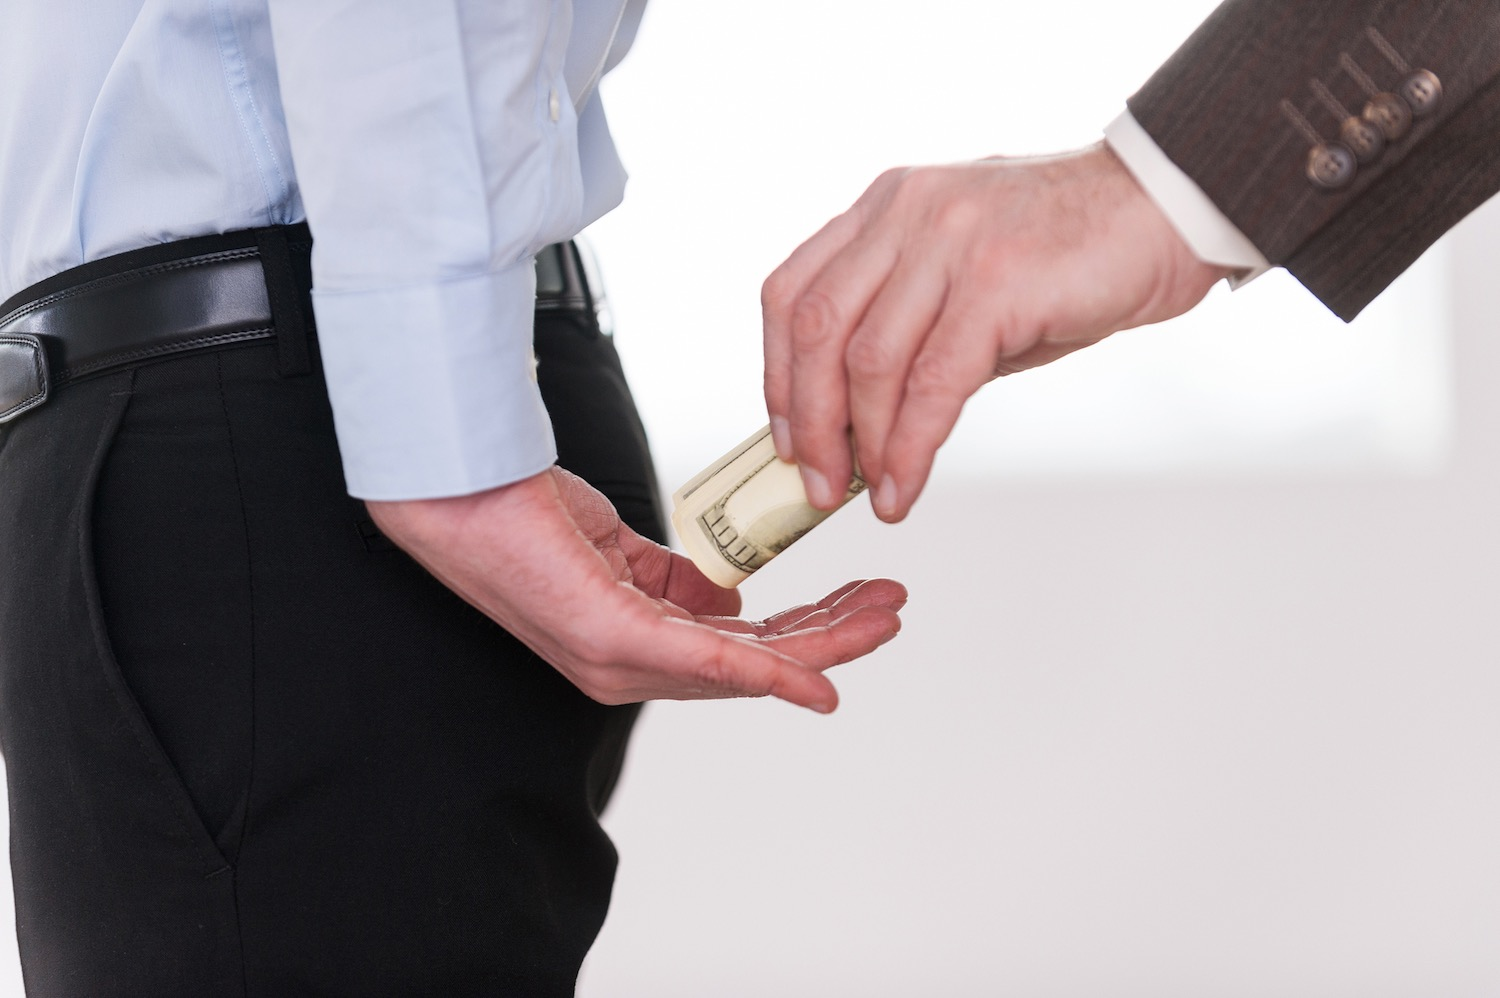 Close-up of businessman giving money to another man in formalwear